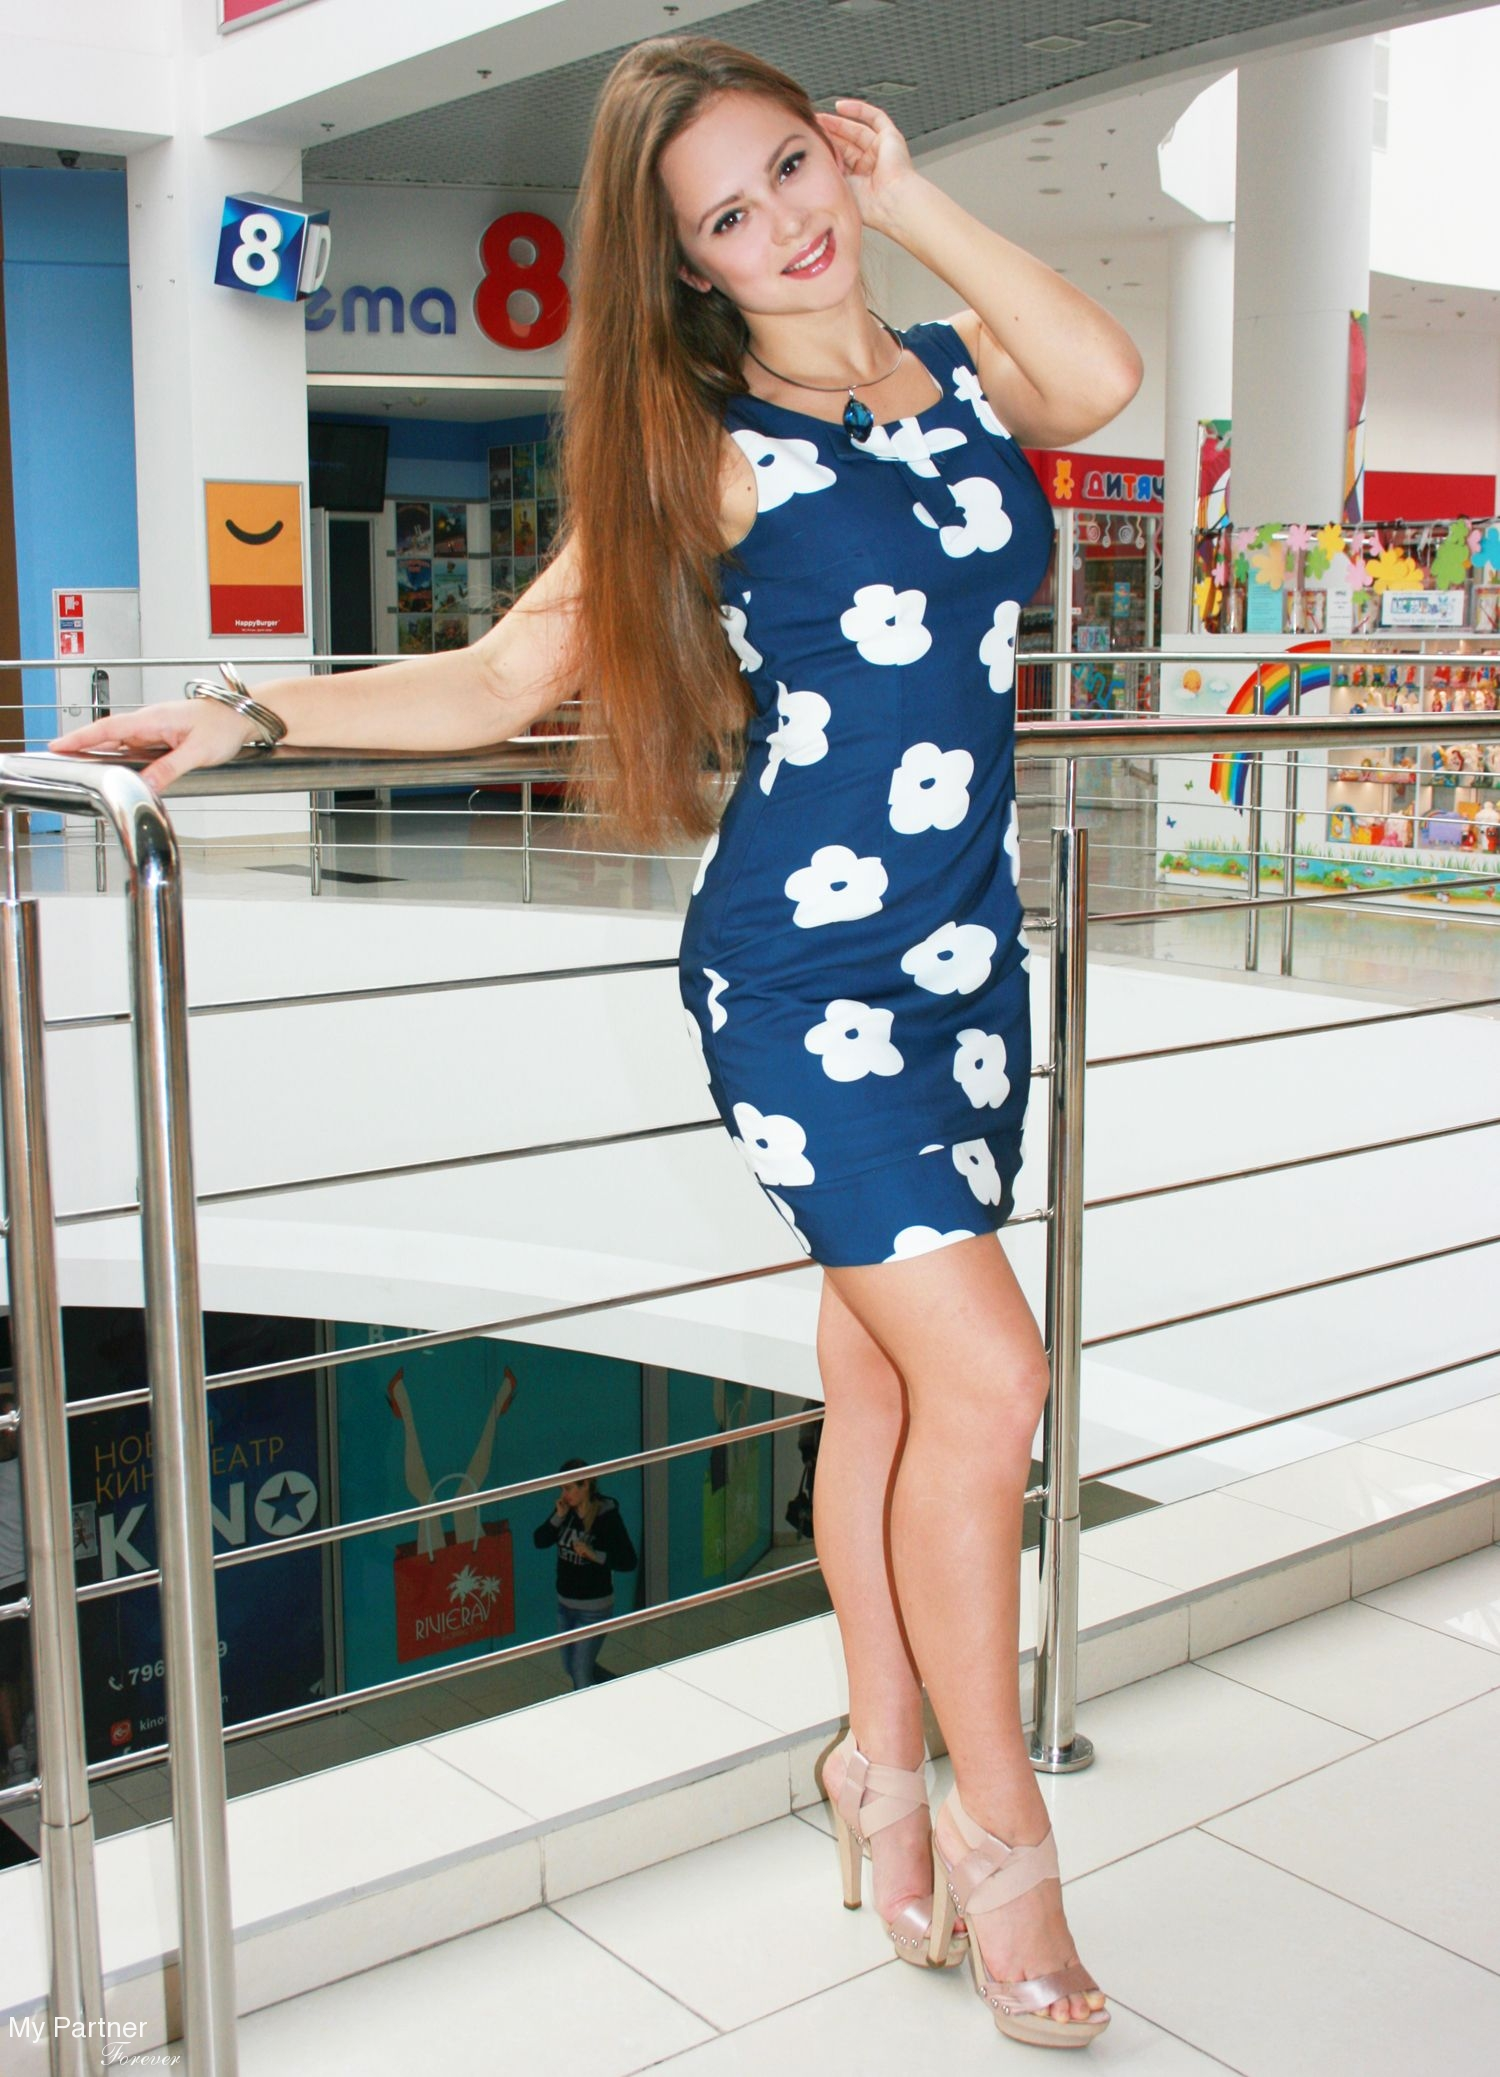 Dating with Charming Ukrainian Woman Olga from Odessa, Ukraine